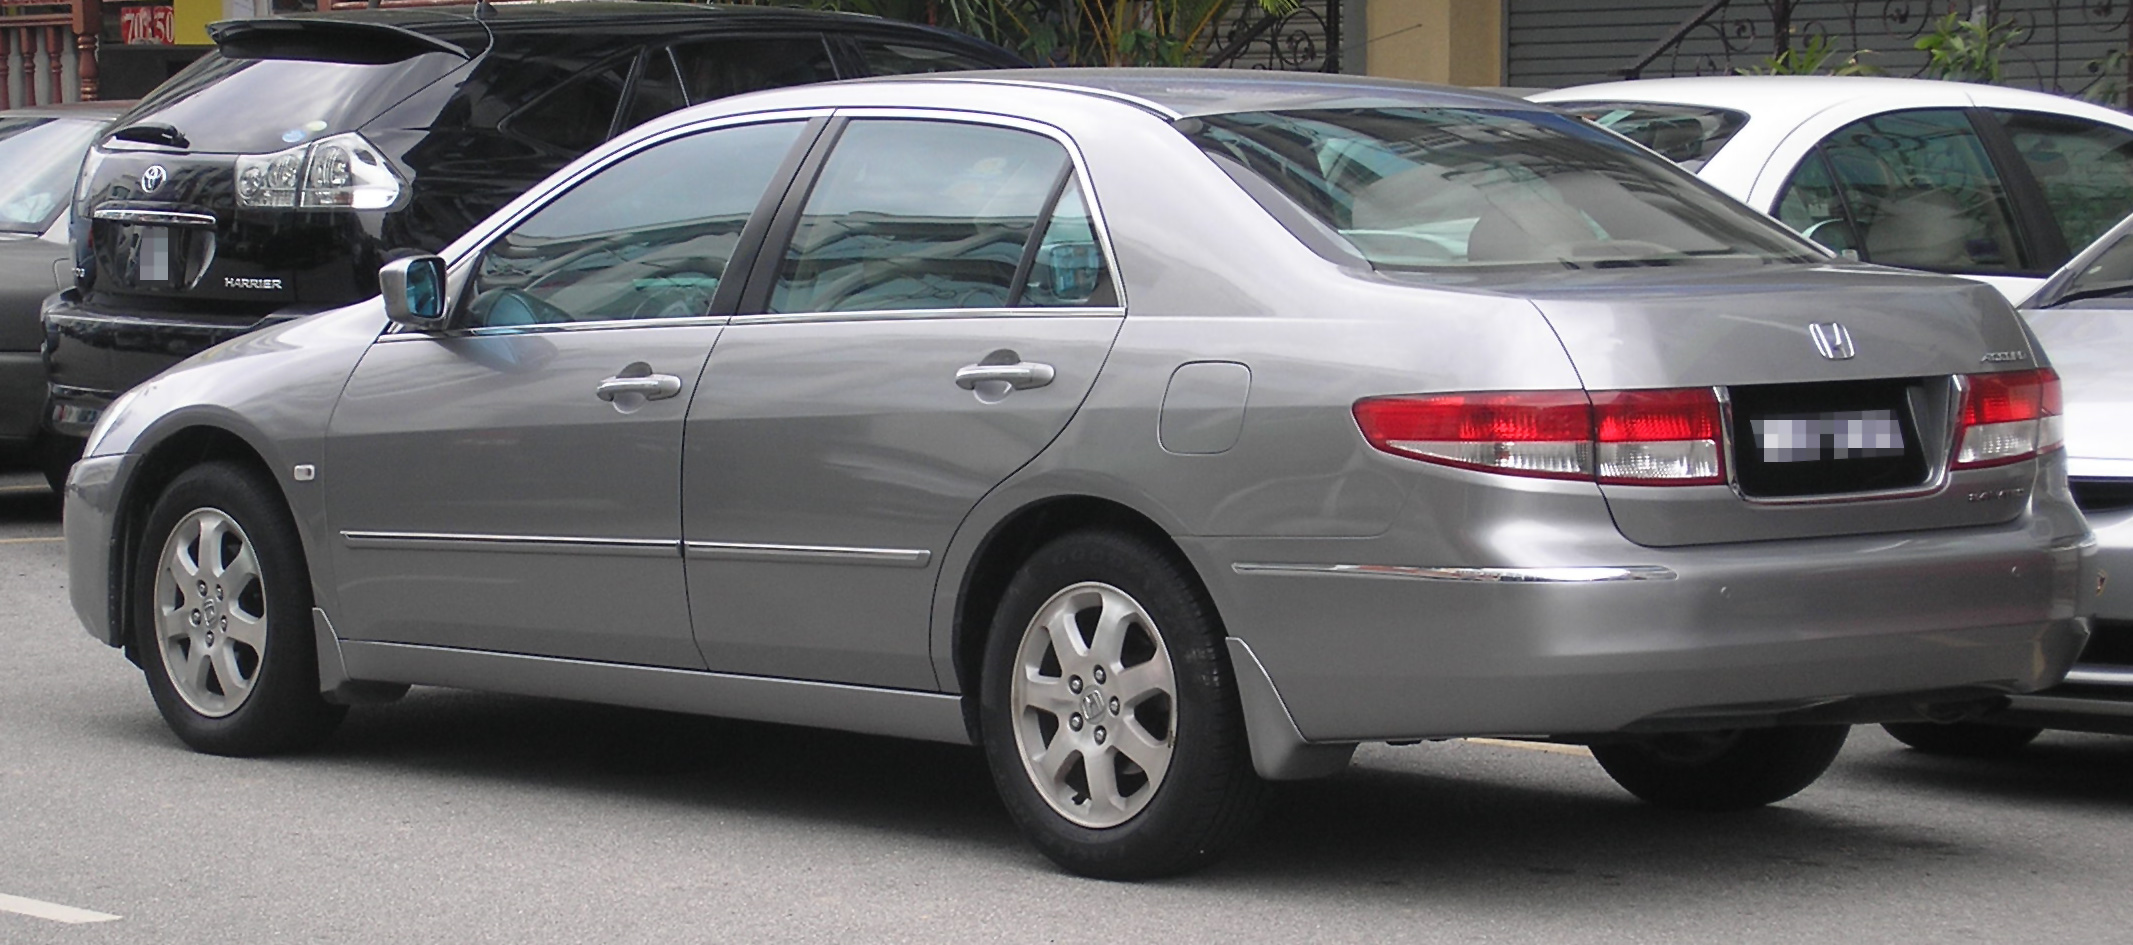 filehonda accord seventh generation rear serdangjpg wikimedia commons